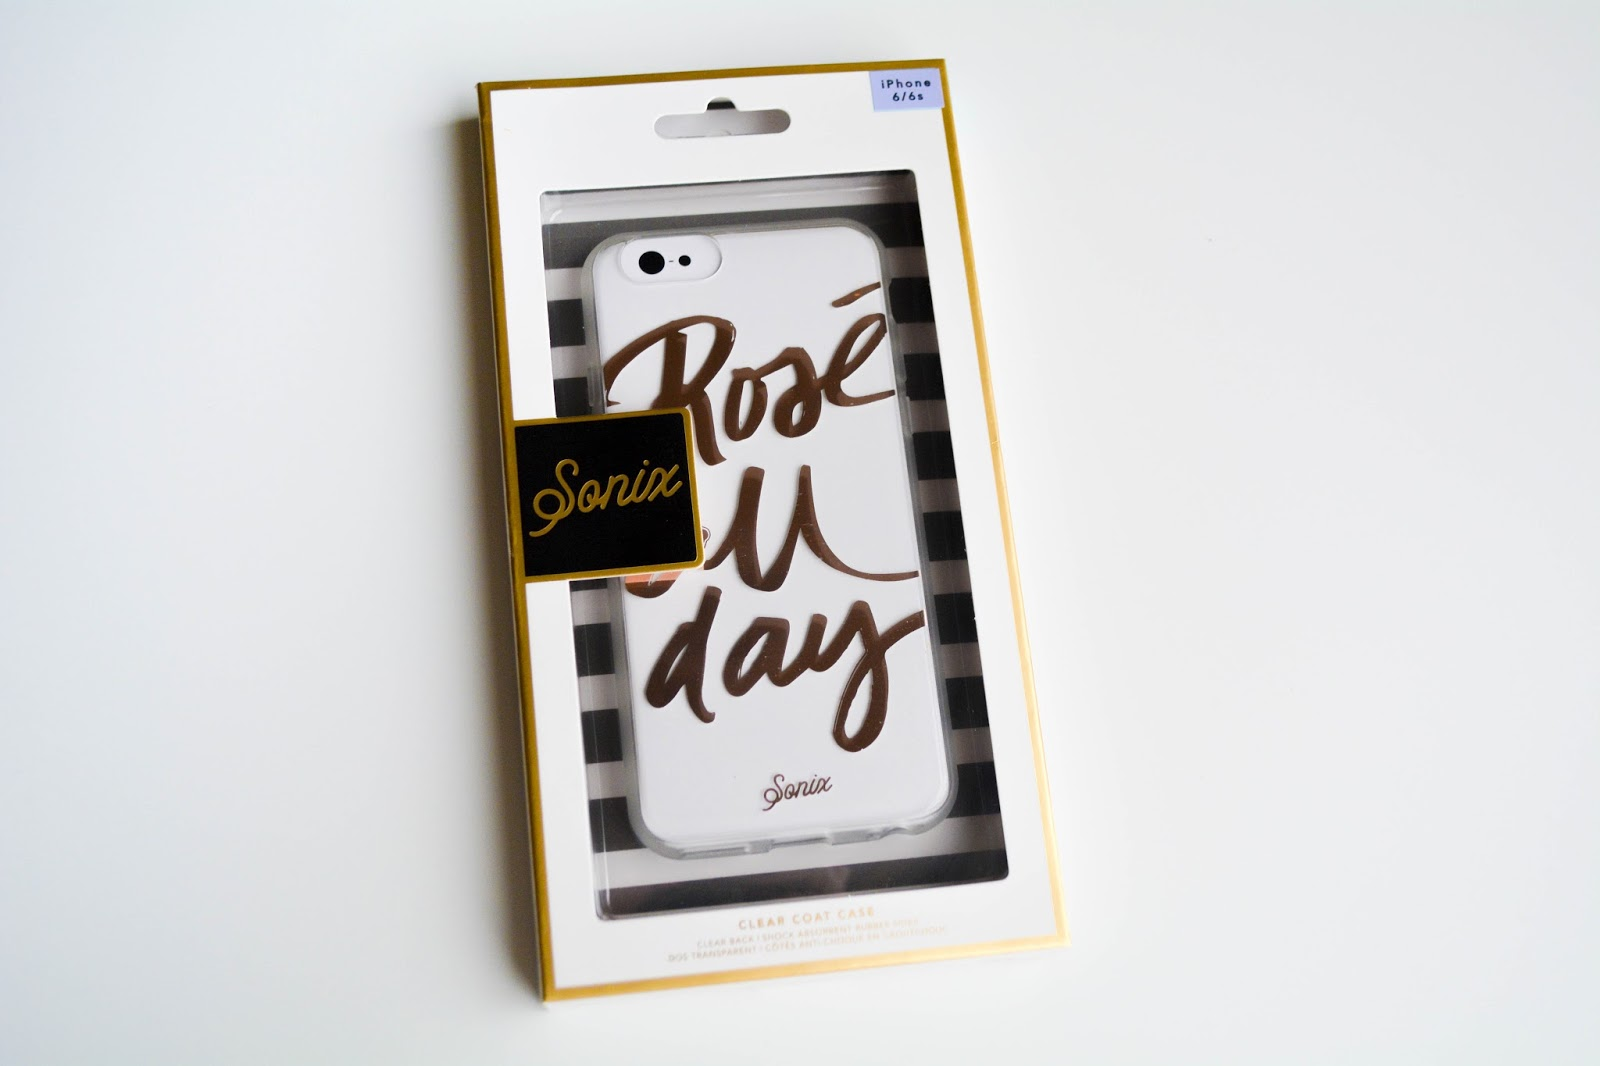 new phone case from sonix